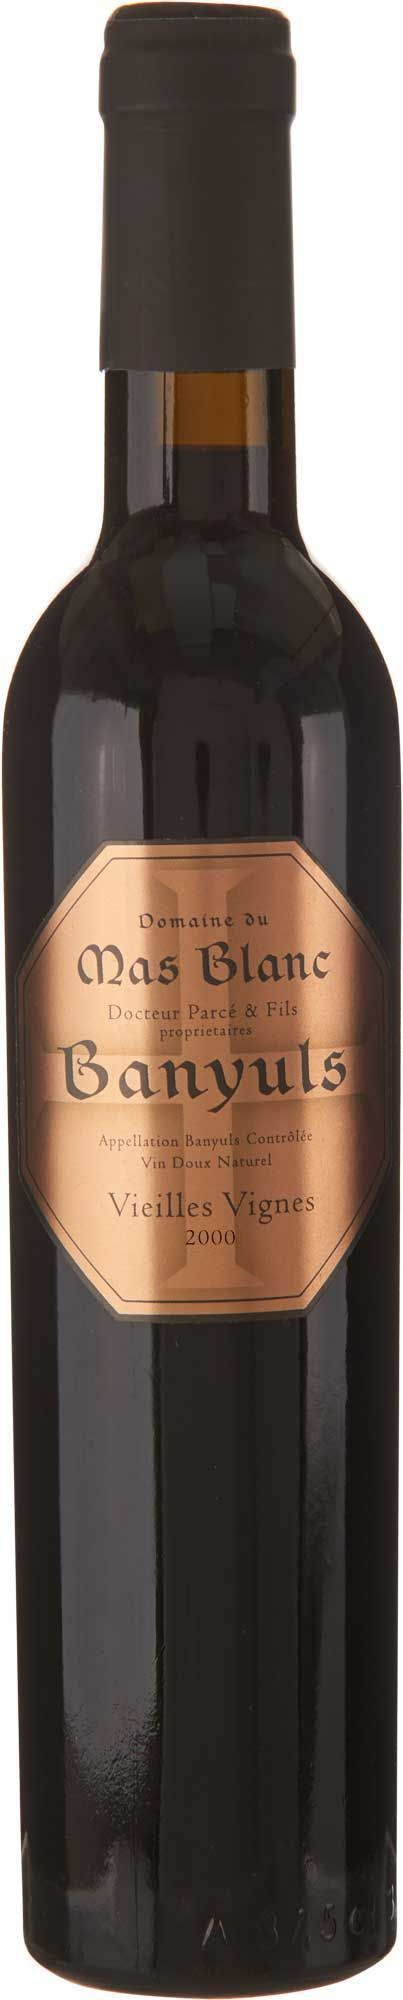 Domaine du Mas Blanc Banyuls Collection 2000